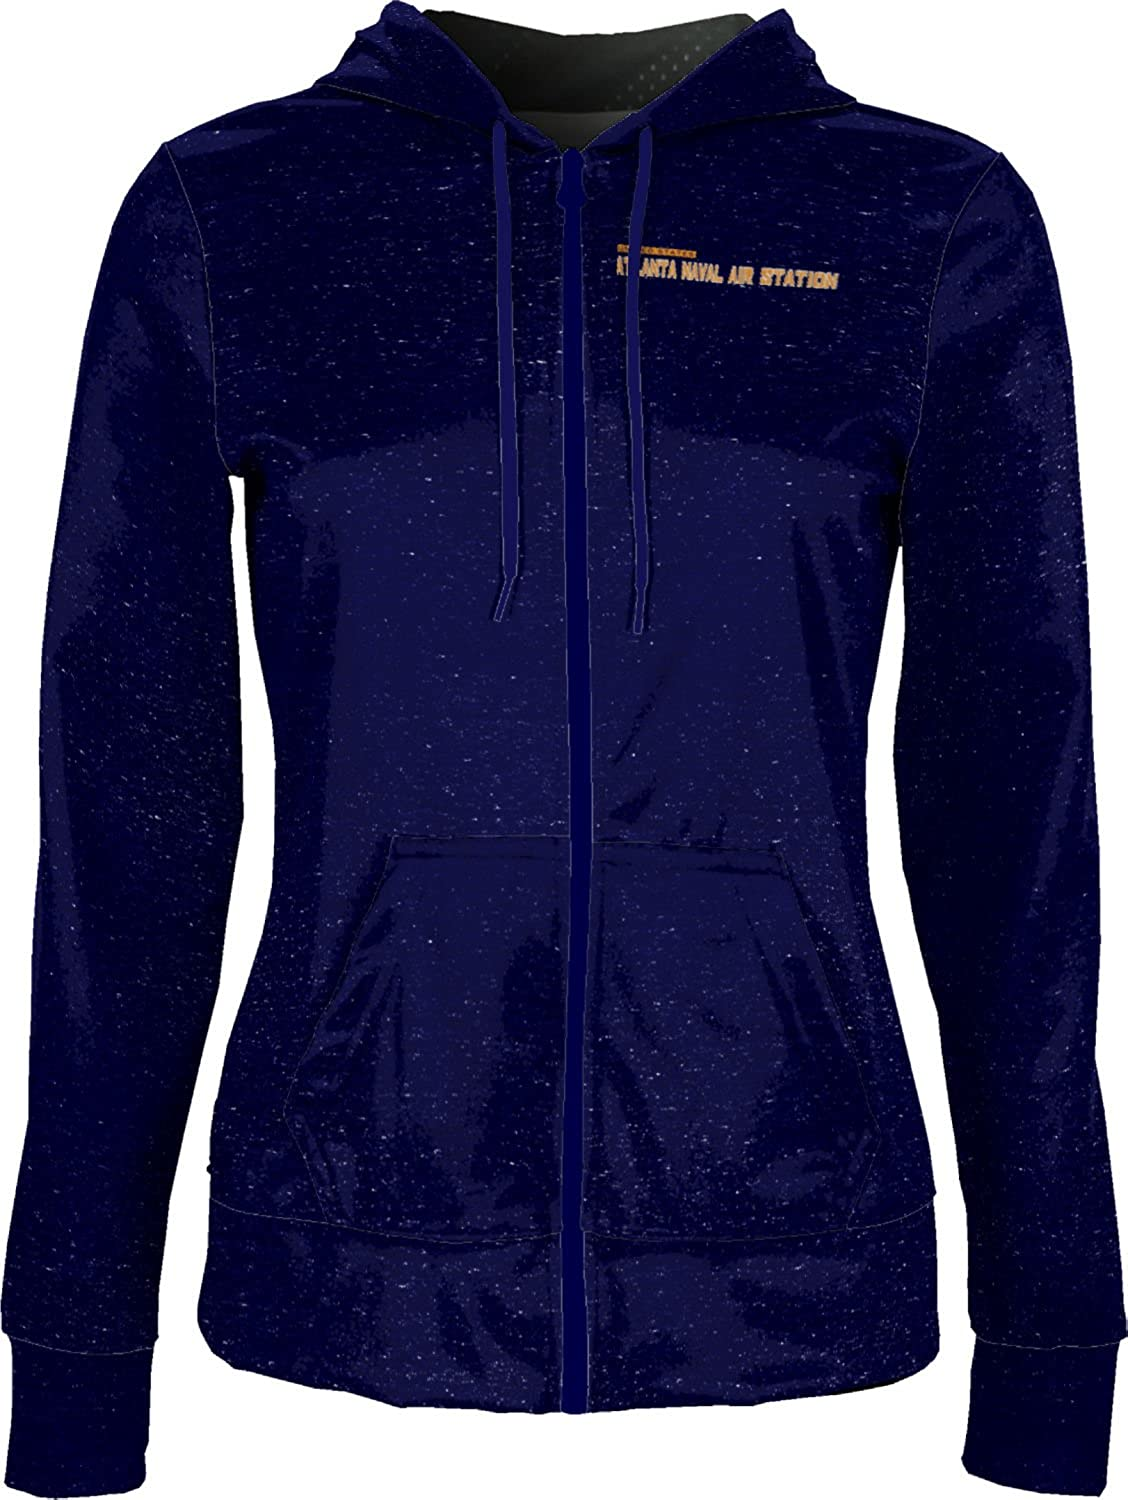 ProSphere Women's Atlanta Naval Air Station Military Heather Fullzip Hoodie